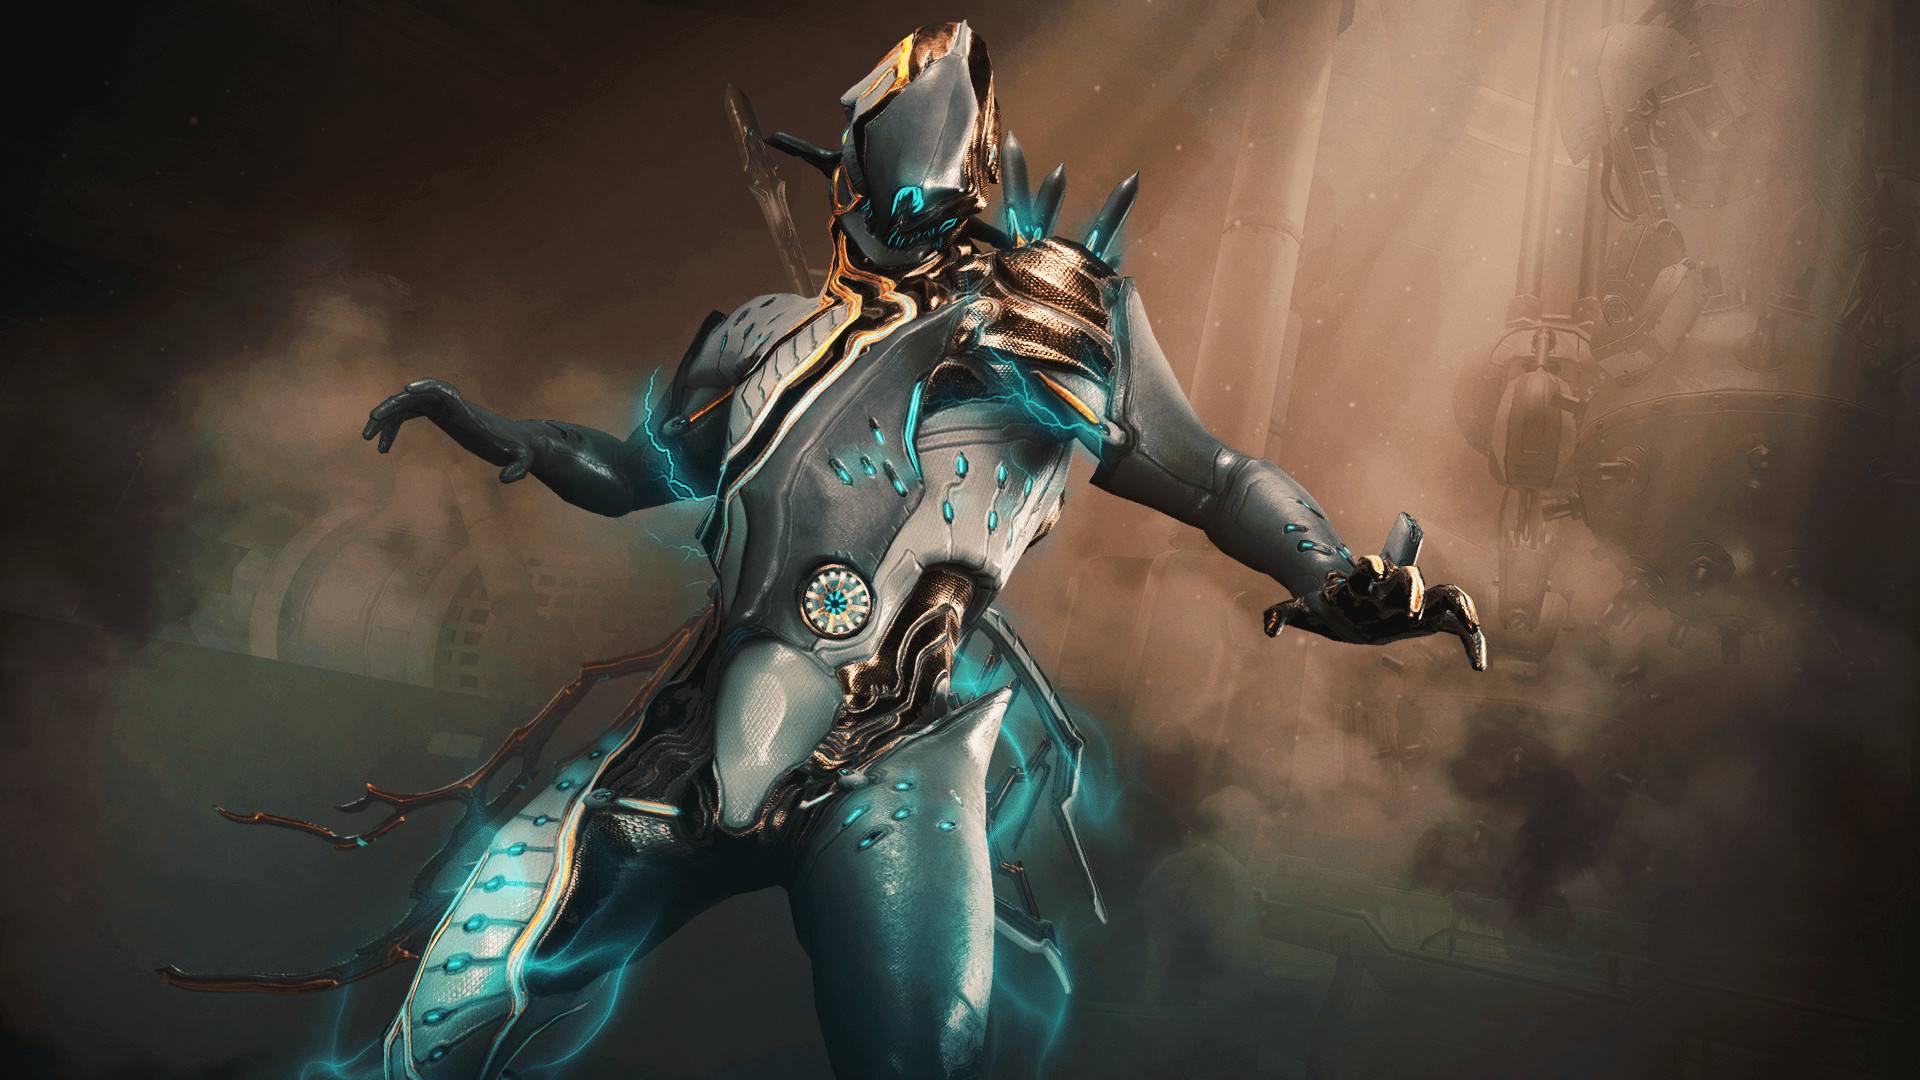 Res: 1920x1080, With this much power flowing through a single Warframe, it's no wonder that  the Volt Proto Skin looks like Ballas' weird science gone haywire!